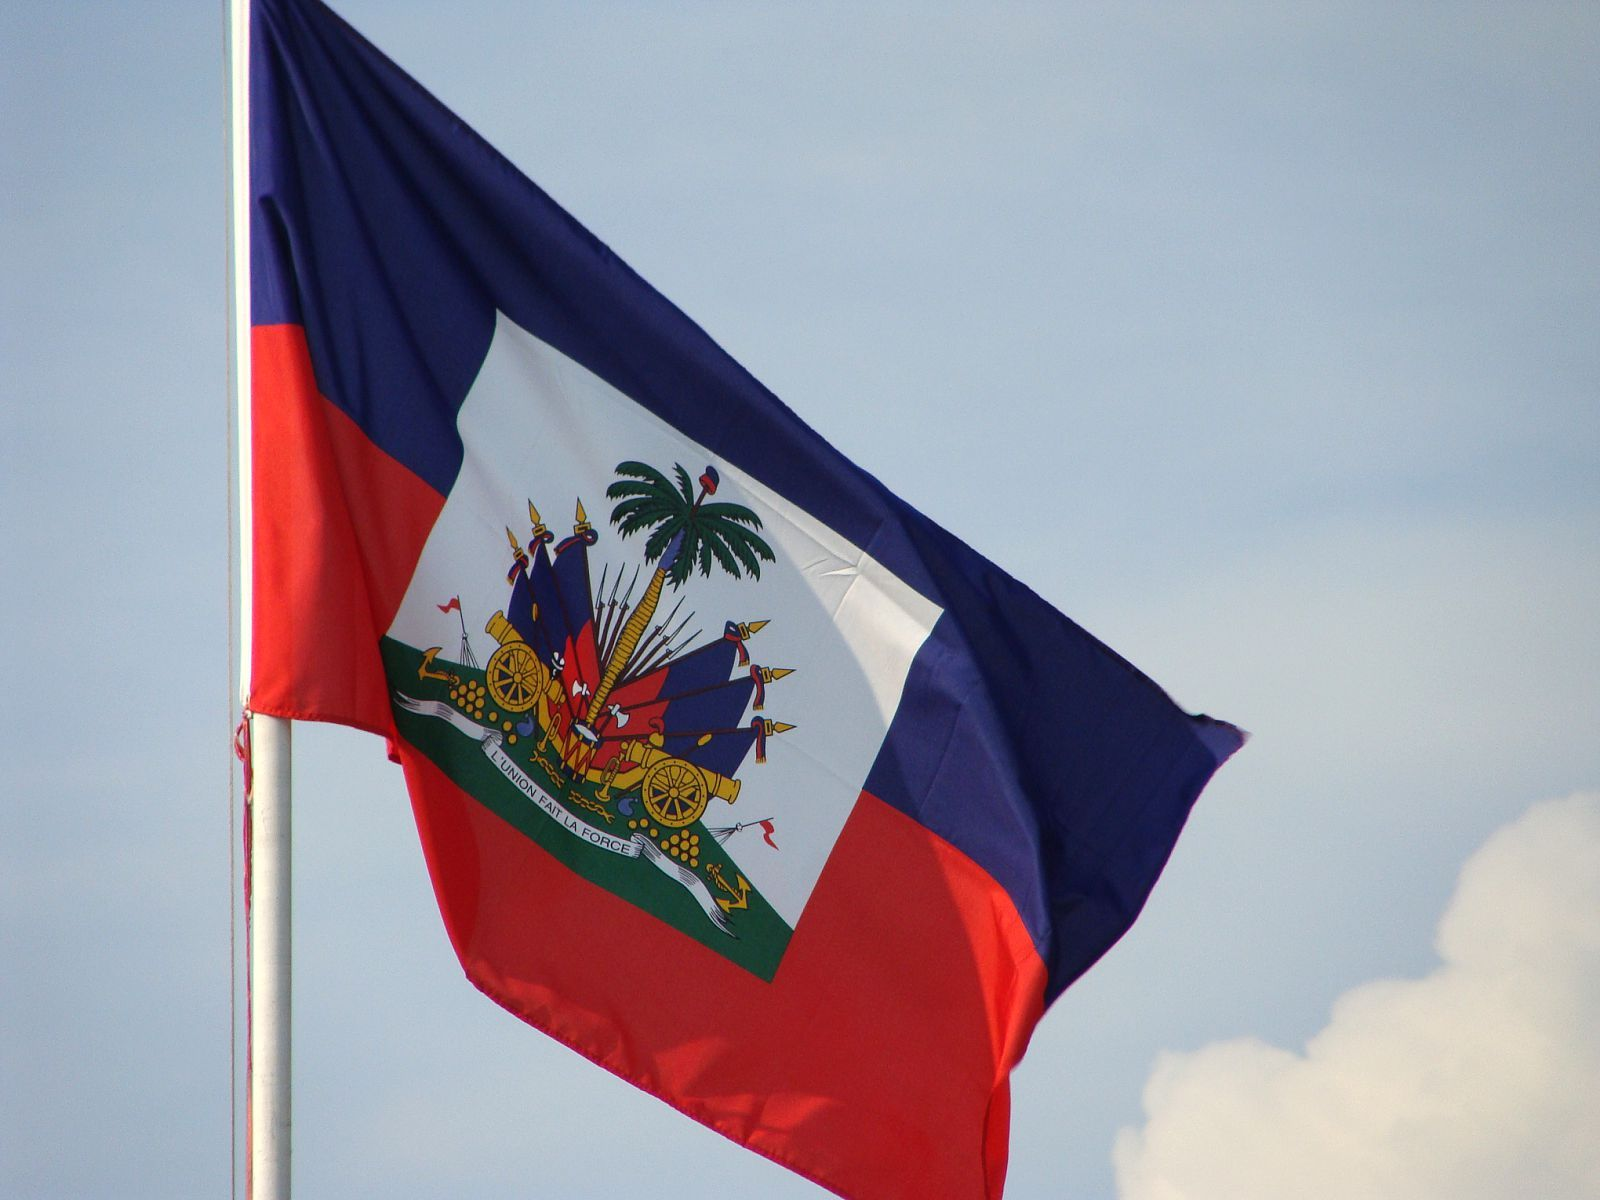 The Haitian Flag Is One The Oldest Flag In The World The Highest Symbol Of The Nation Of Haiti And Is Viewed Haiti Flag Haitian Flag Haitian Independence Day